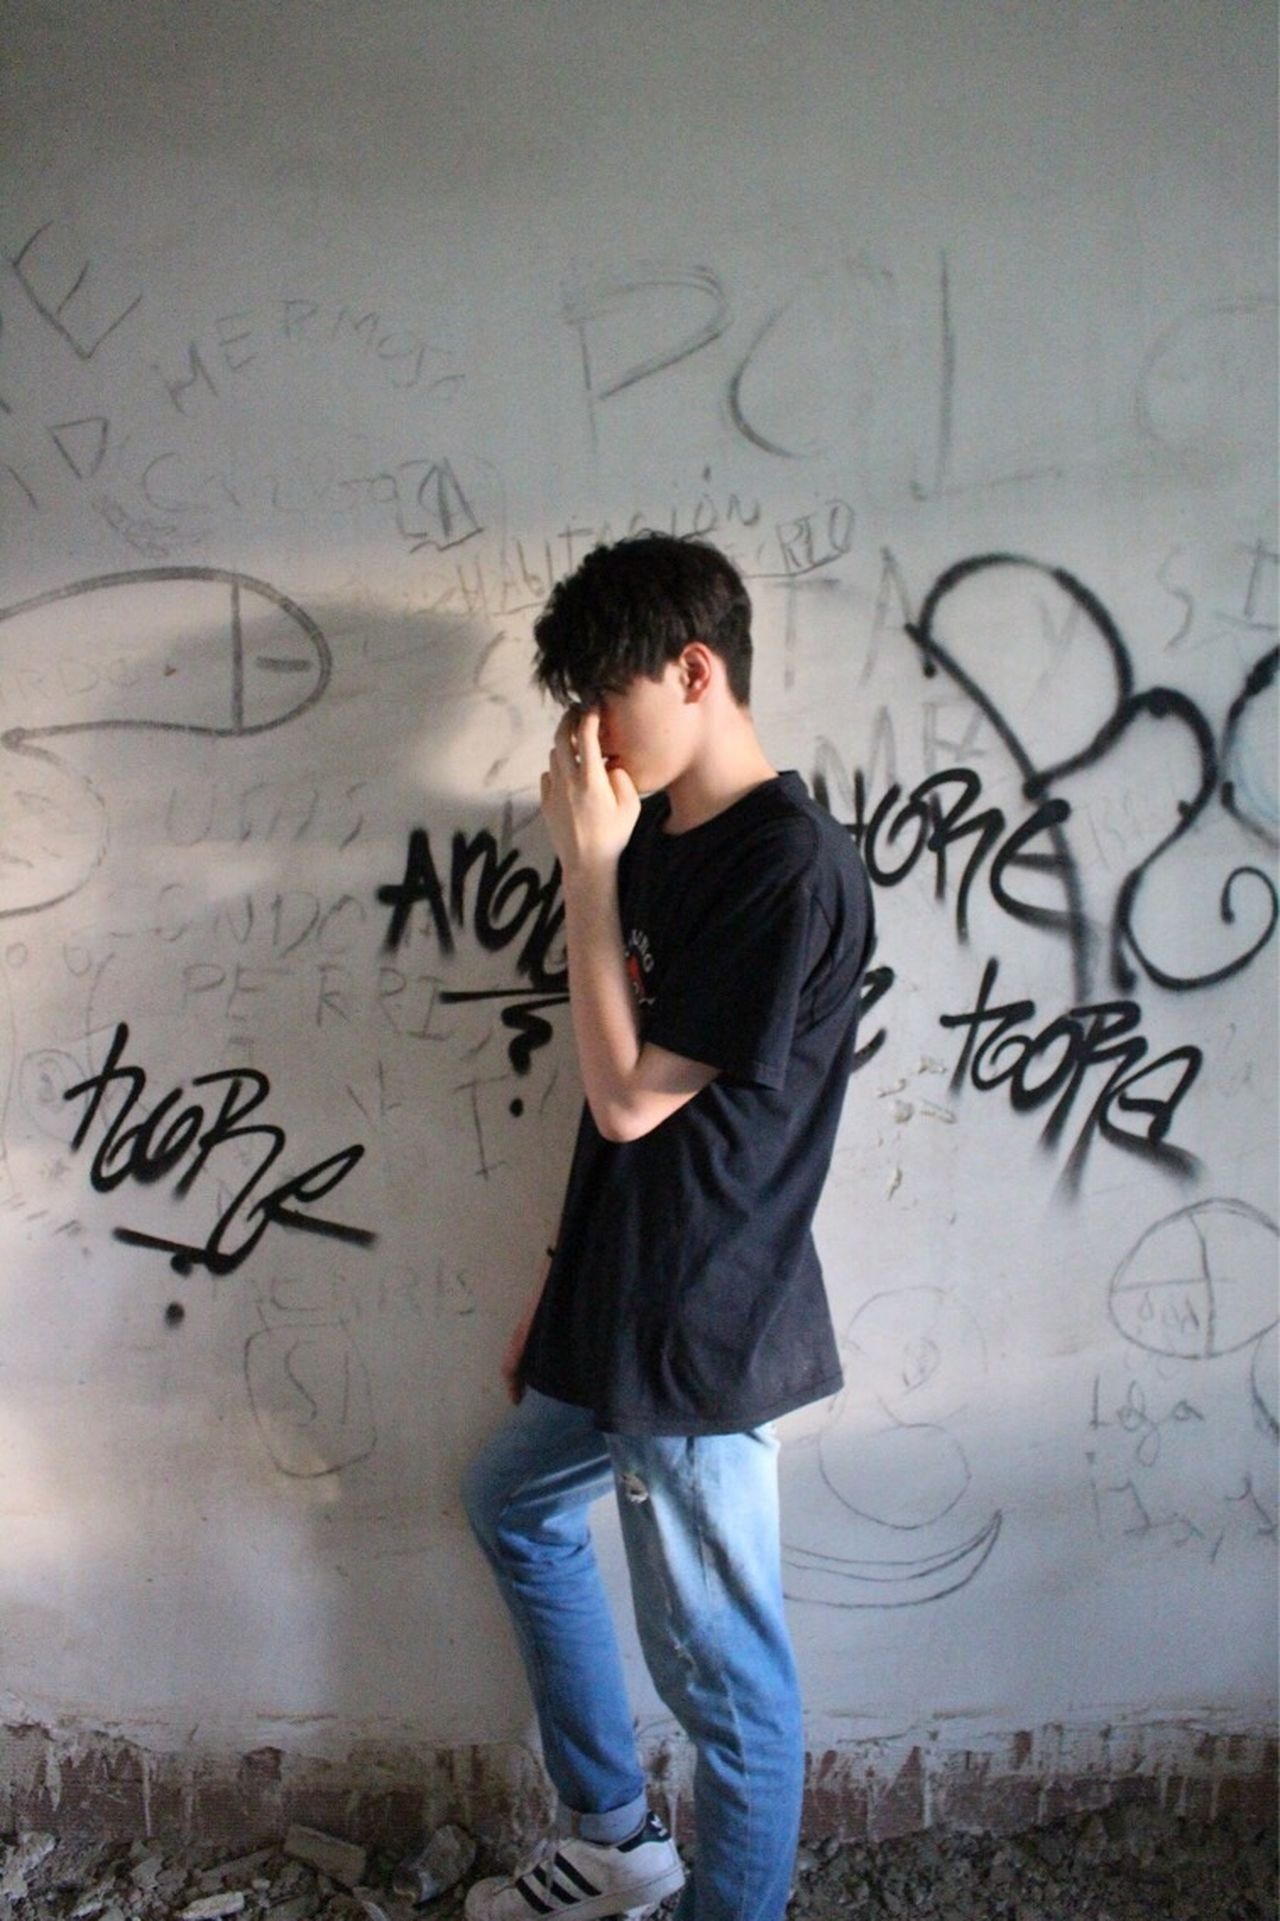 WARRIOR Warrior One Person Casual Clothing Teenager Outfit Real People Education One Teenage Boy Only Formula Lifestyles Young Adult Tensed Indoors  Blackboard  Day People